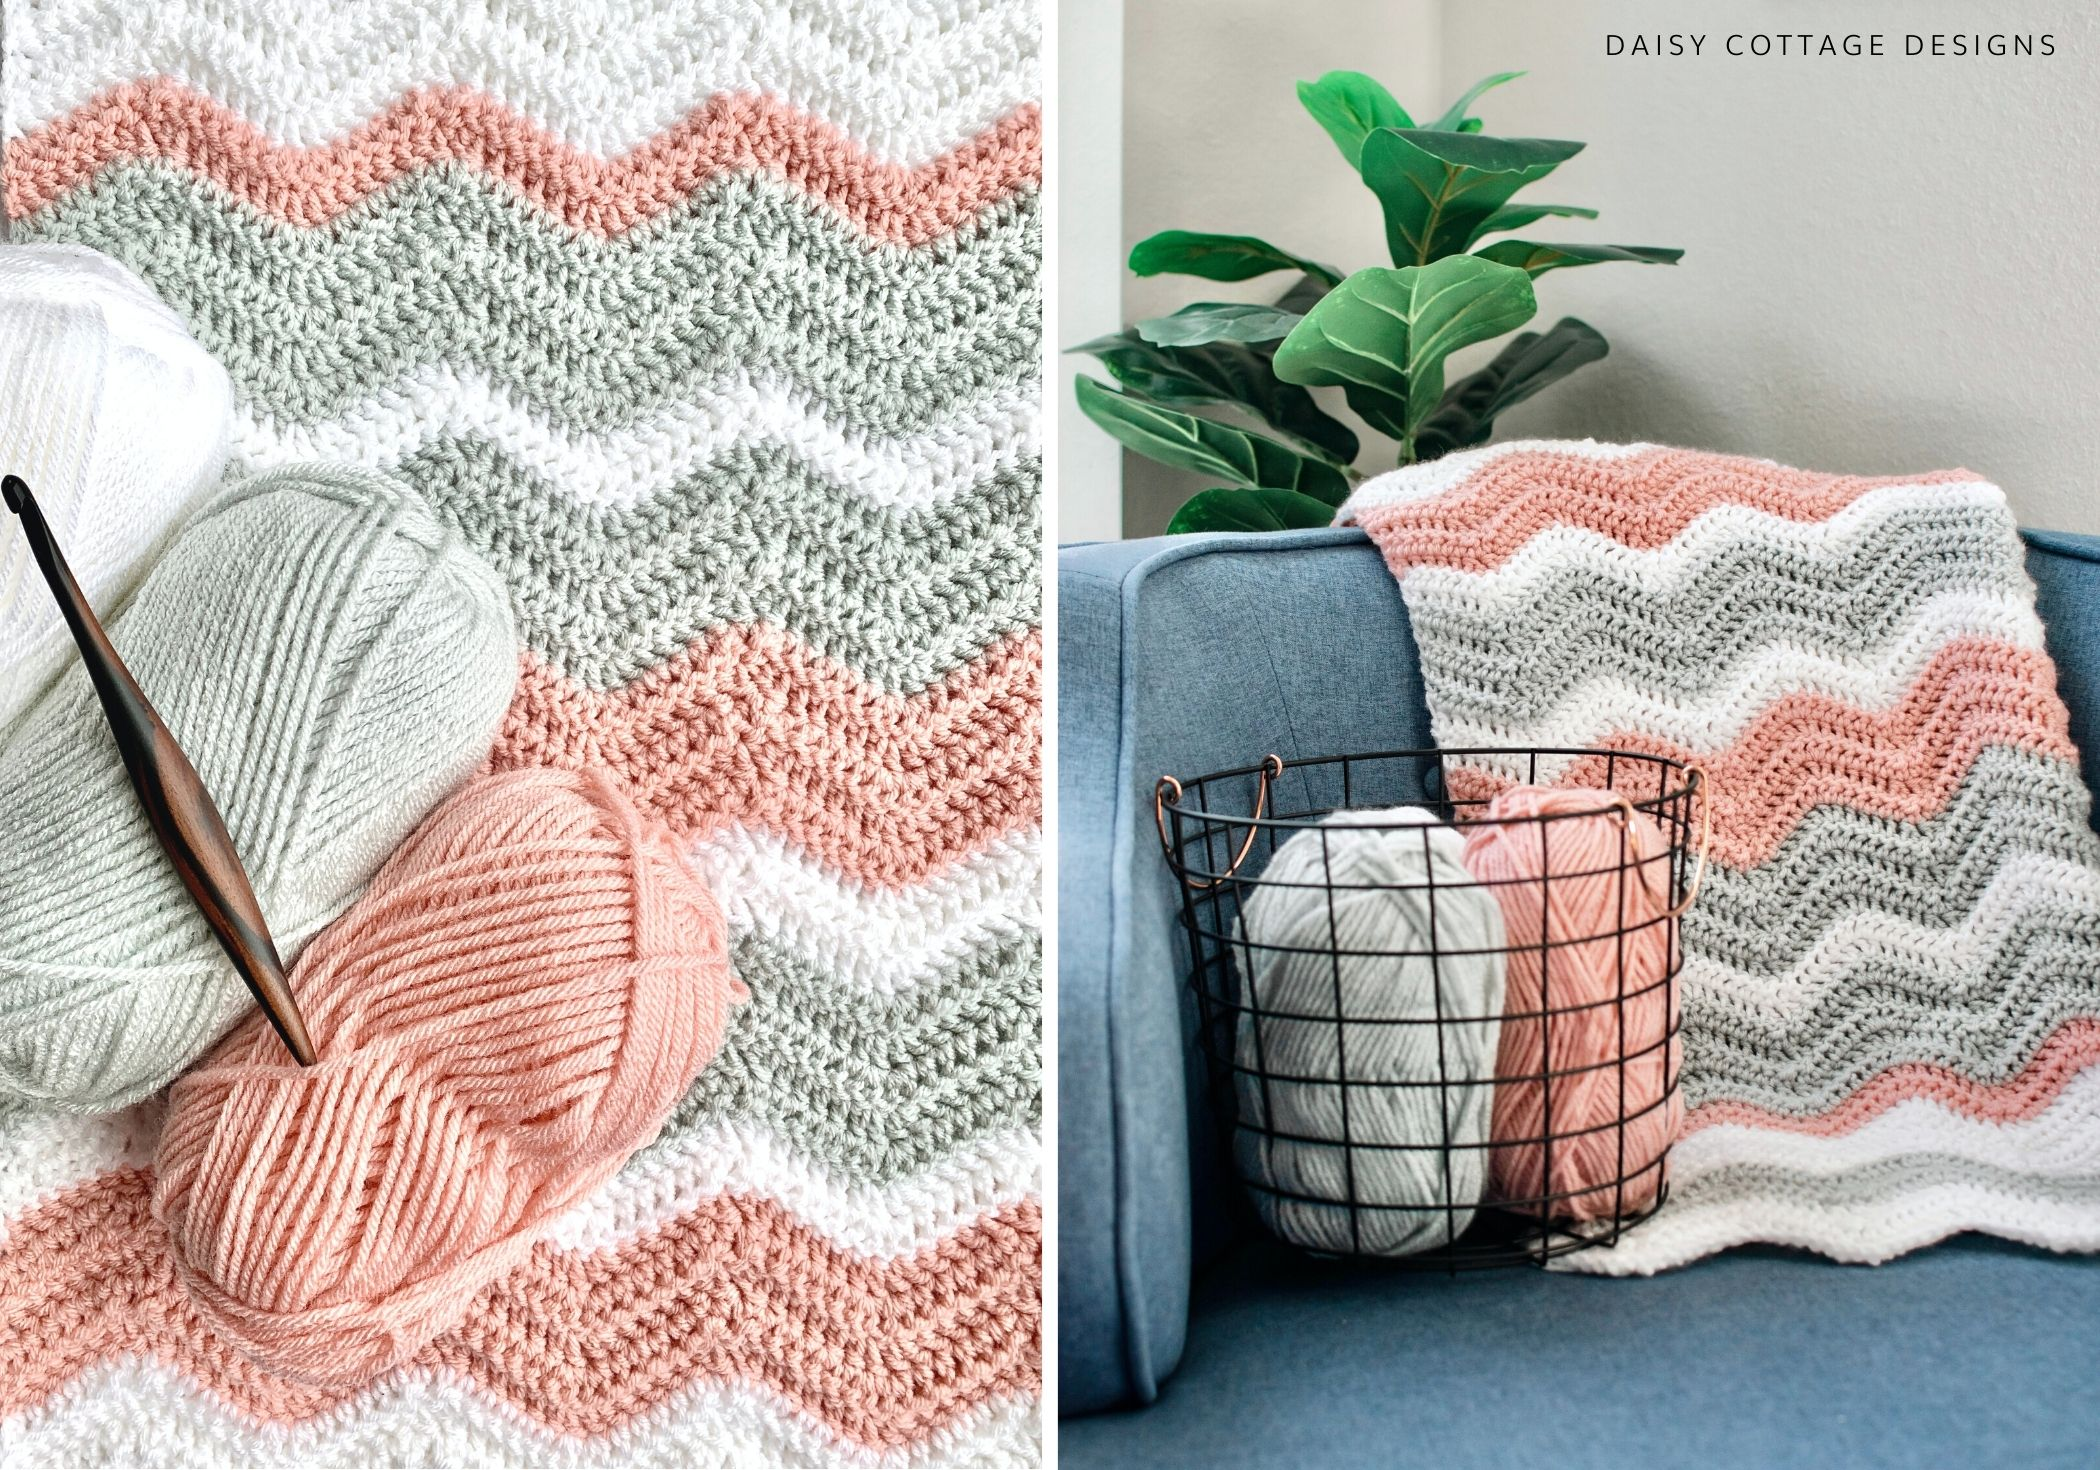 Ripple Blanket Crochet Pattern Daisy Cottage Designs